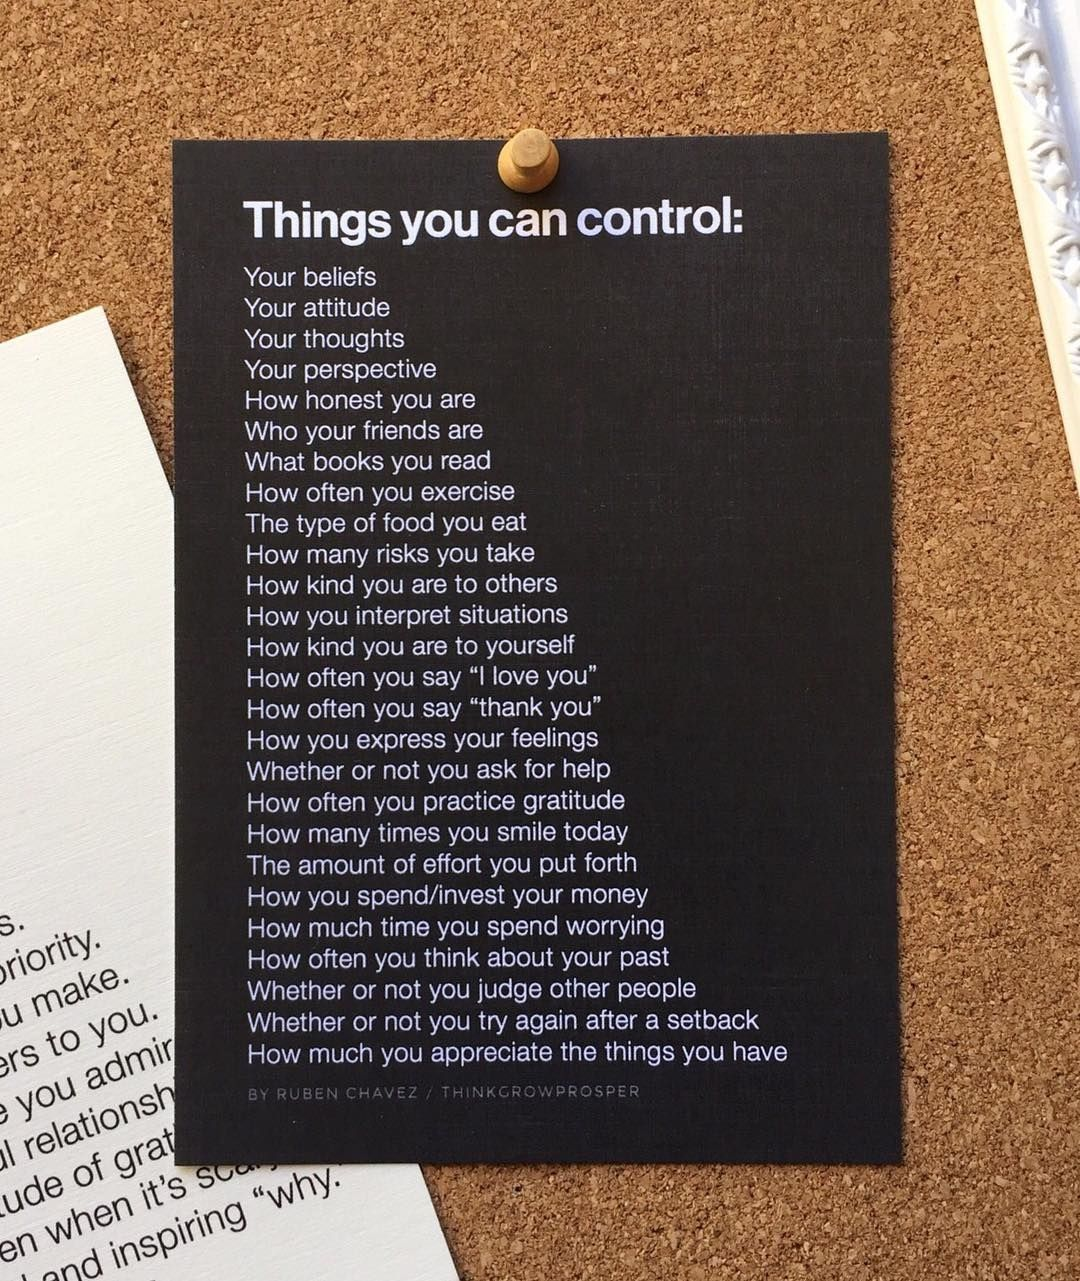 Focus On What You Can Control Quotes: Quite A List Of Things That Are Within Our Control. Focus